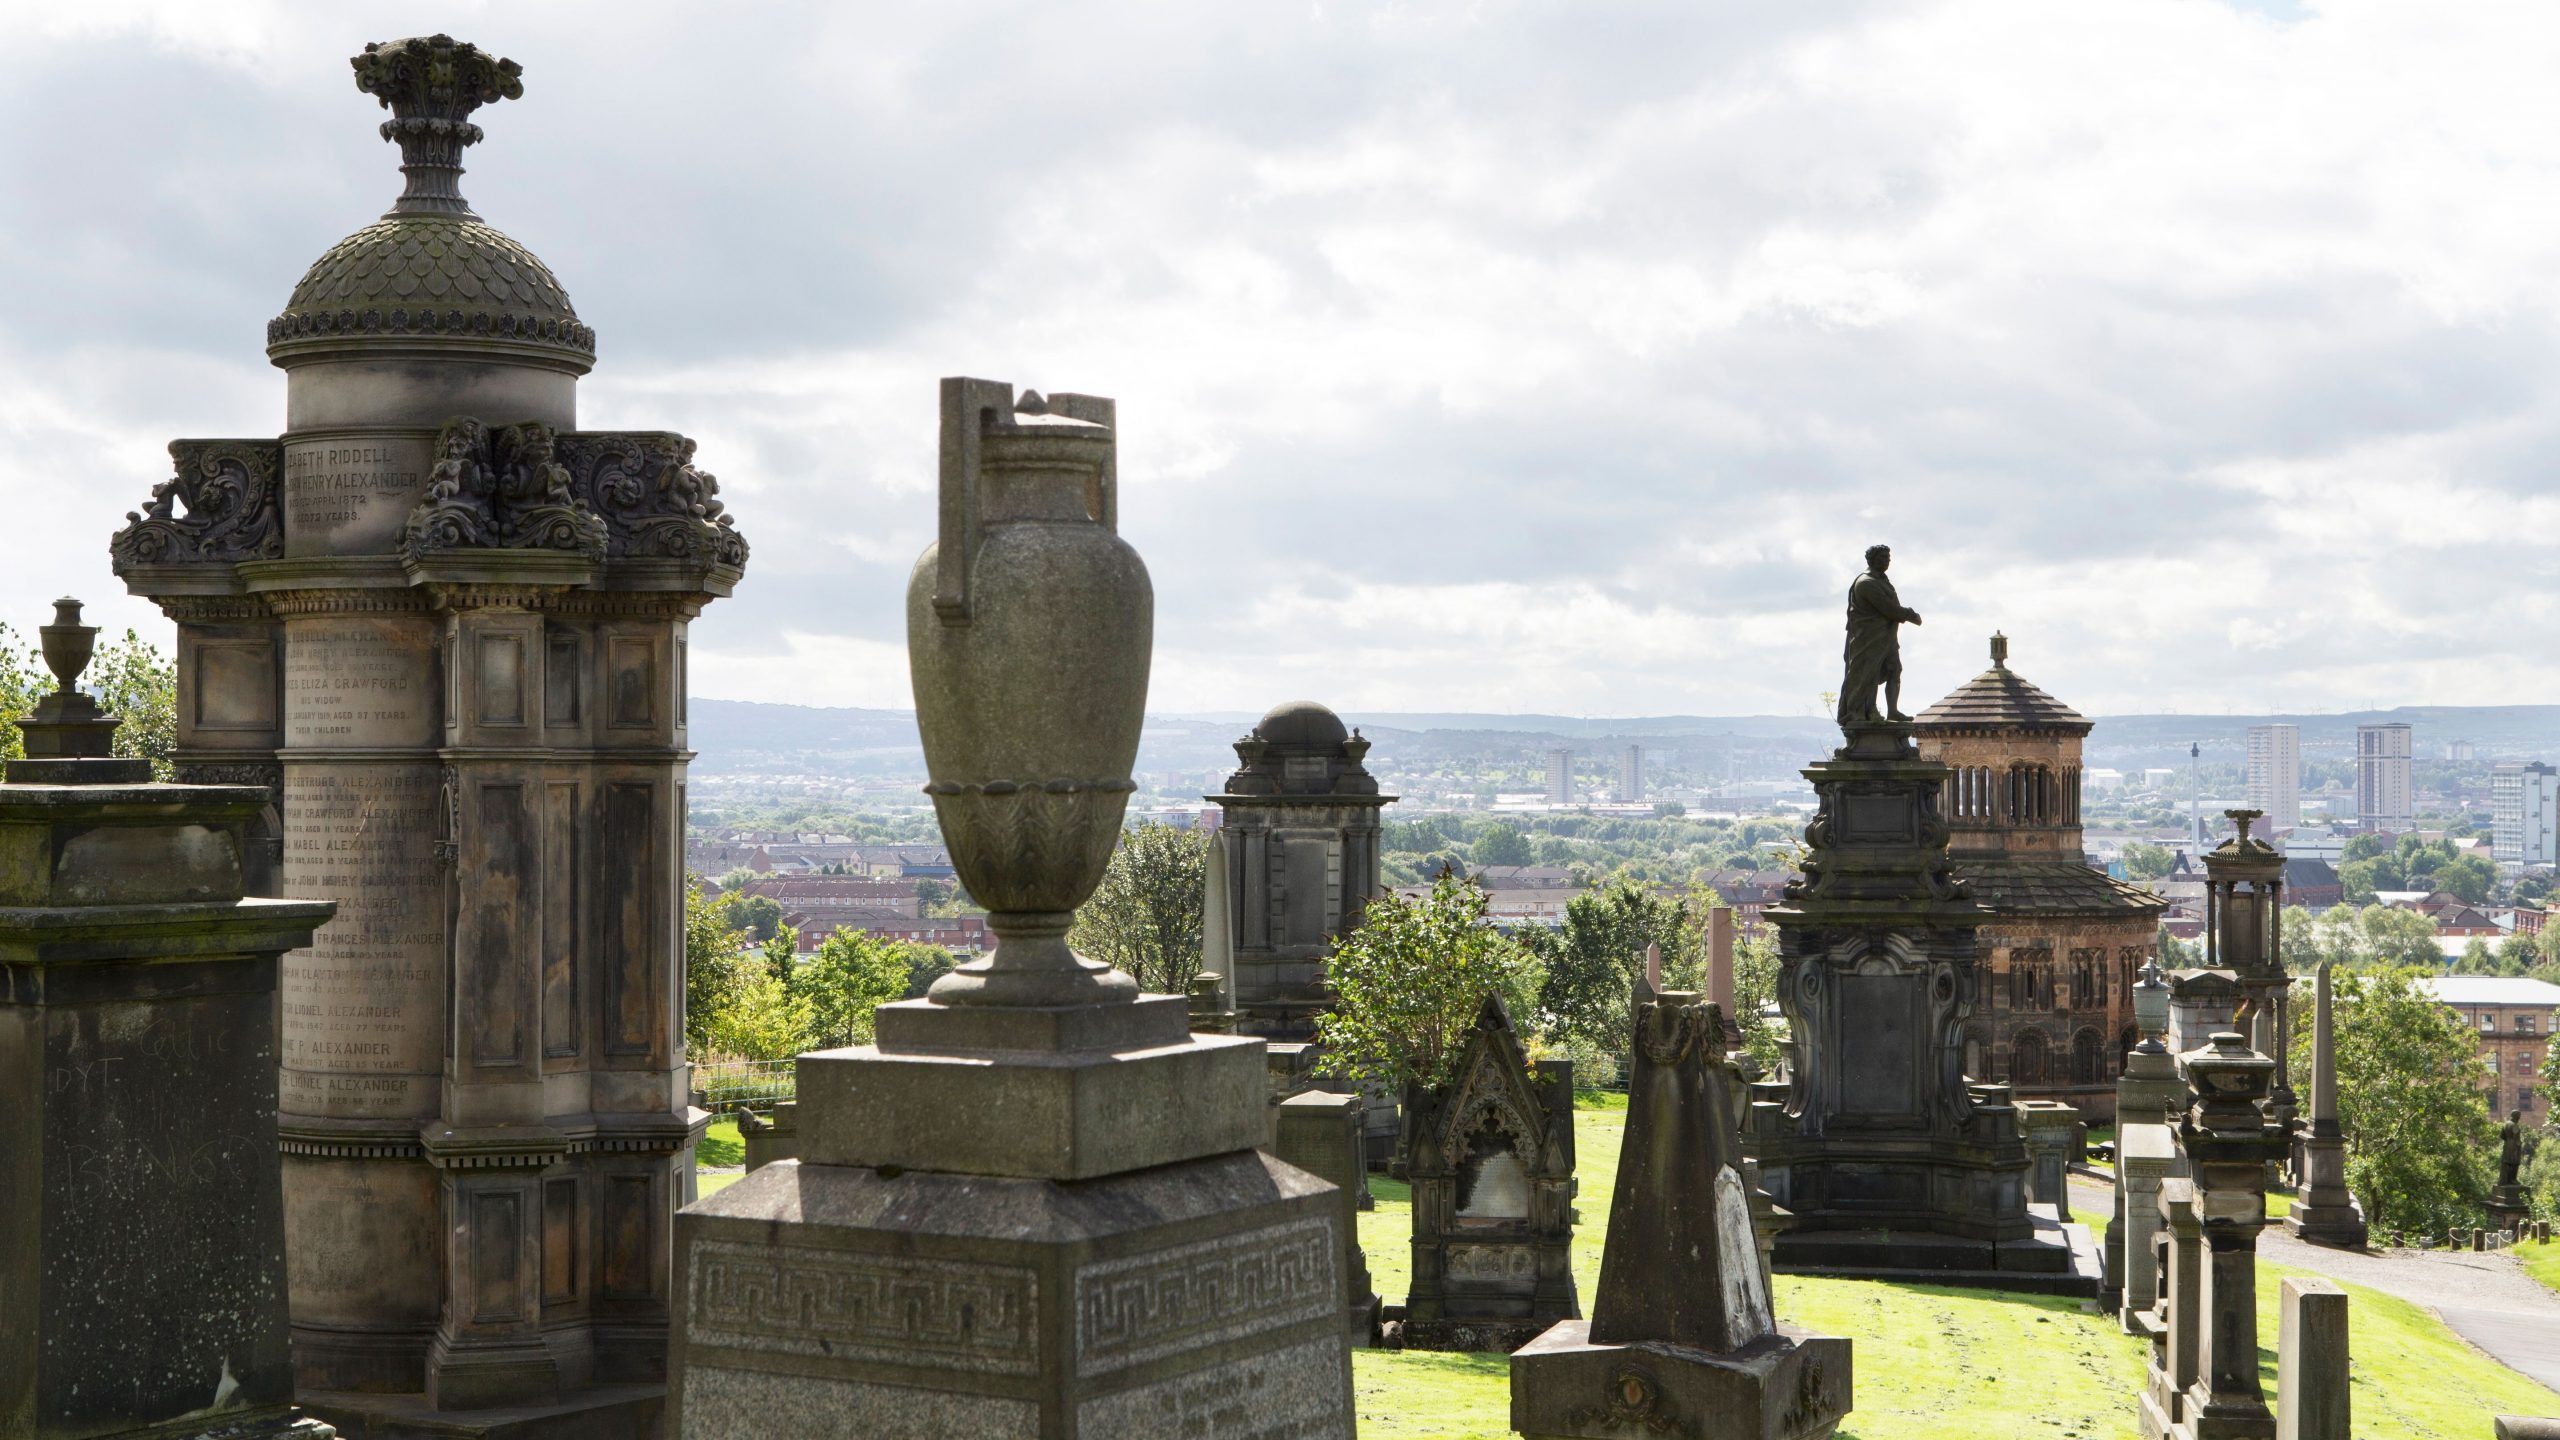 Spilling down a hillside into the valley below, Glasgow Necropolis took inspiration from Paris's Père Lachaise cemetery. It was one of the UK's first garden cemeteries when it opened in 1833